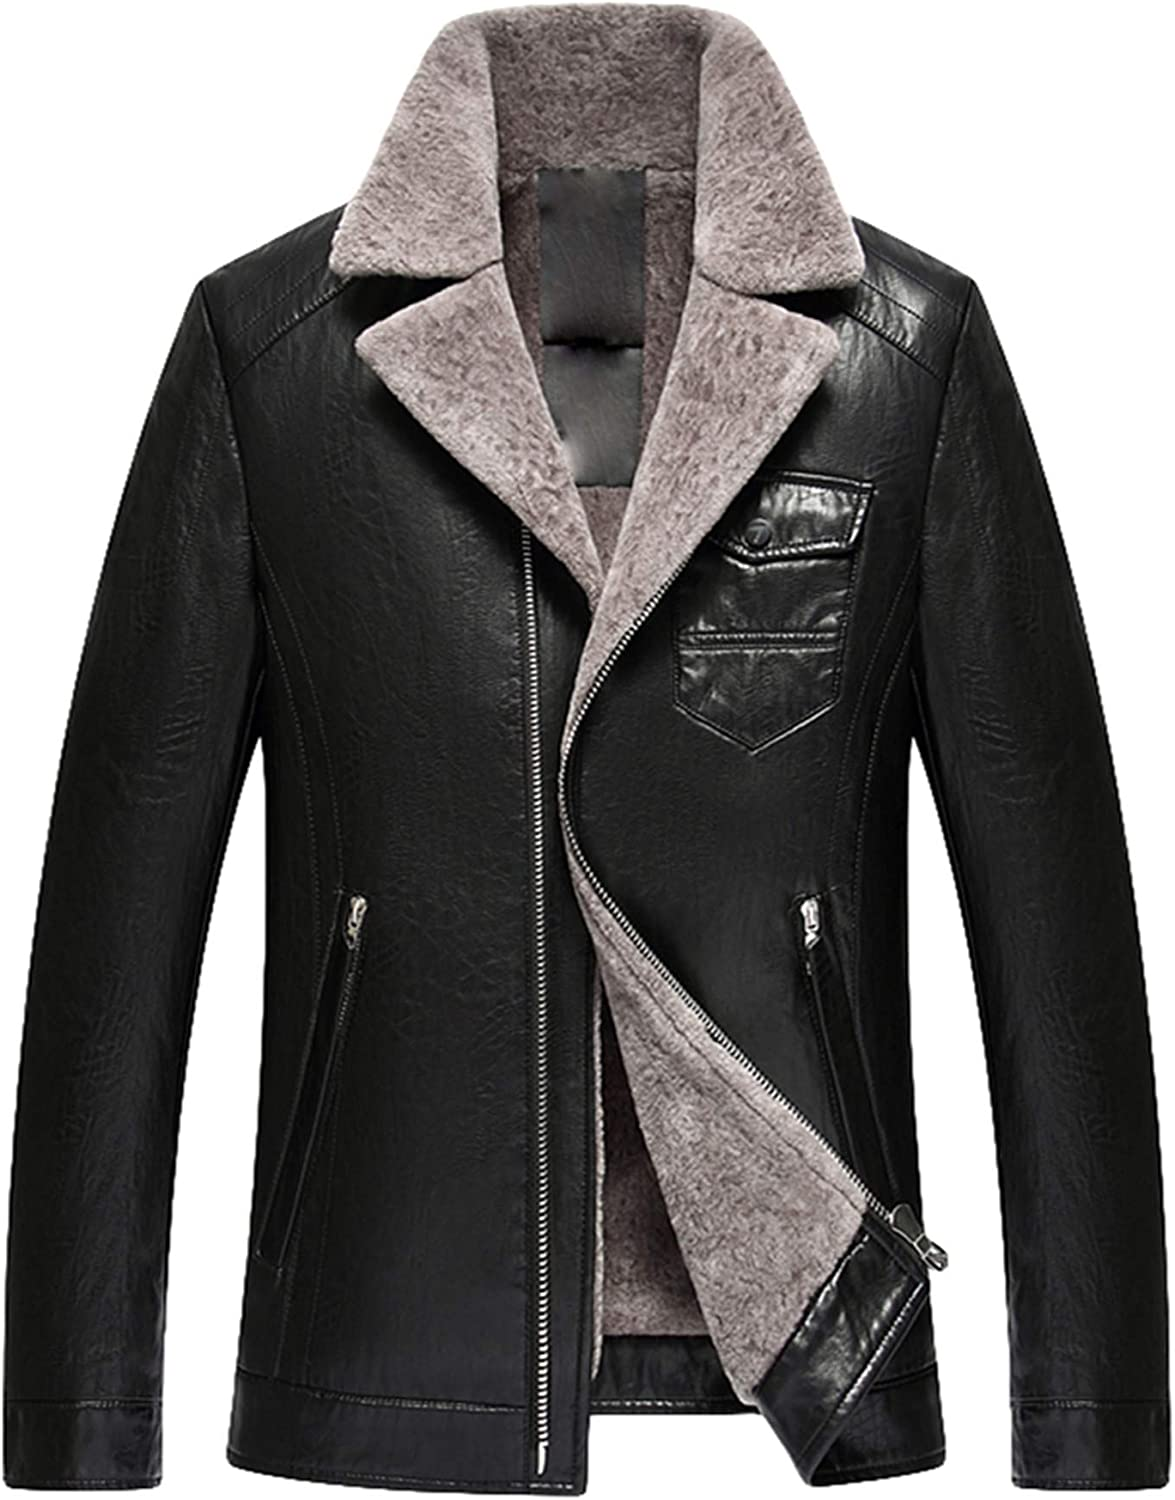 PENER Men Suit Collar Leather Jacket Warm PU Leather Lamb Wool Lined